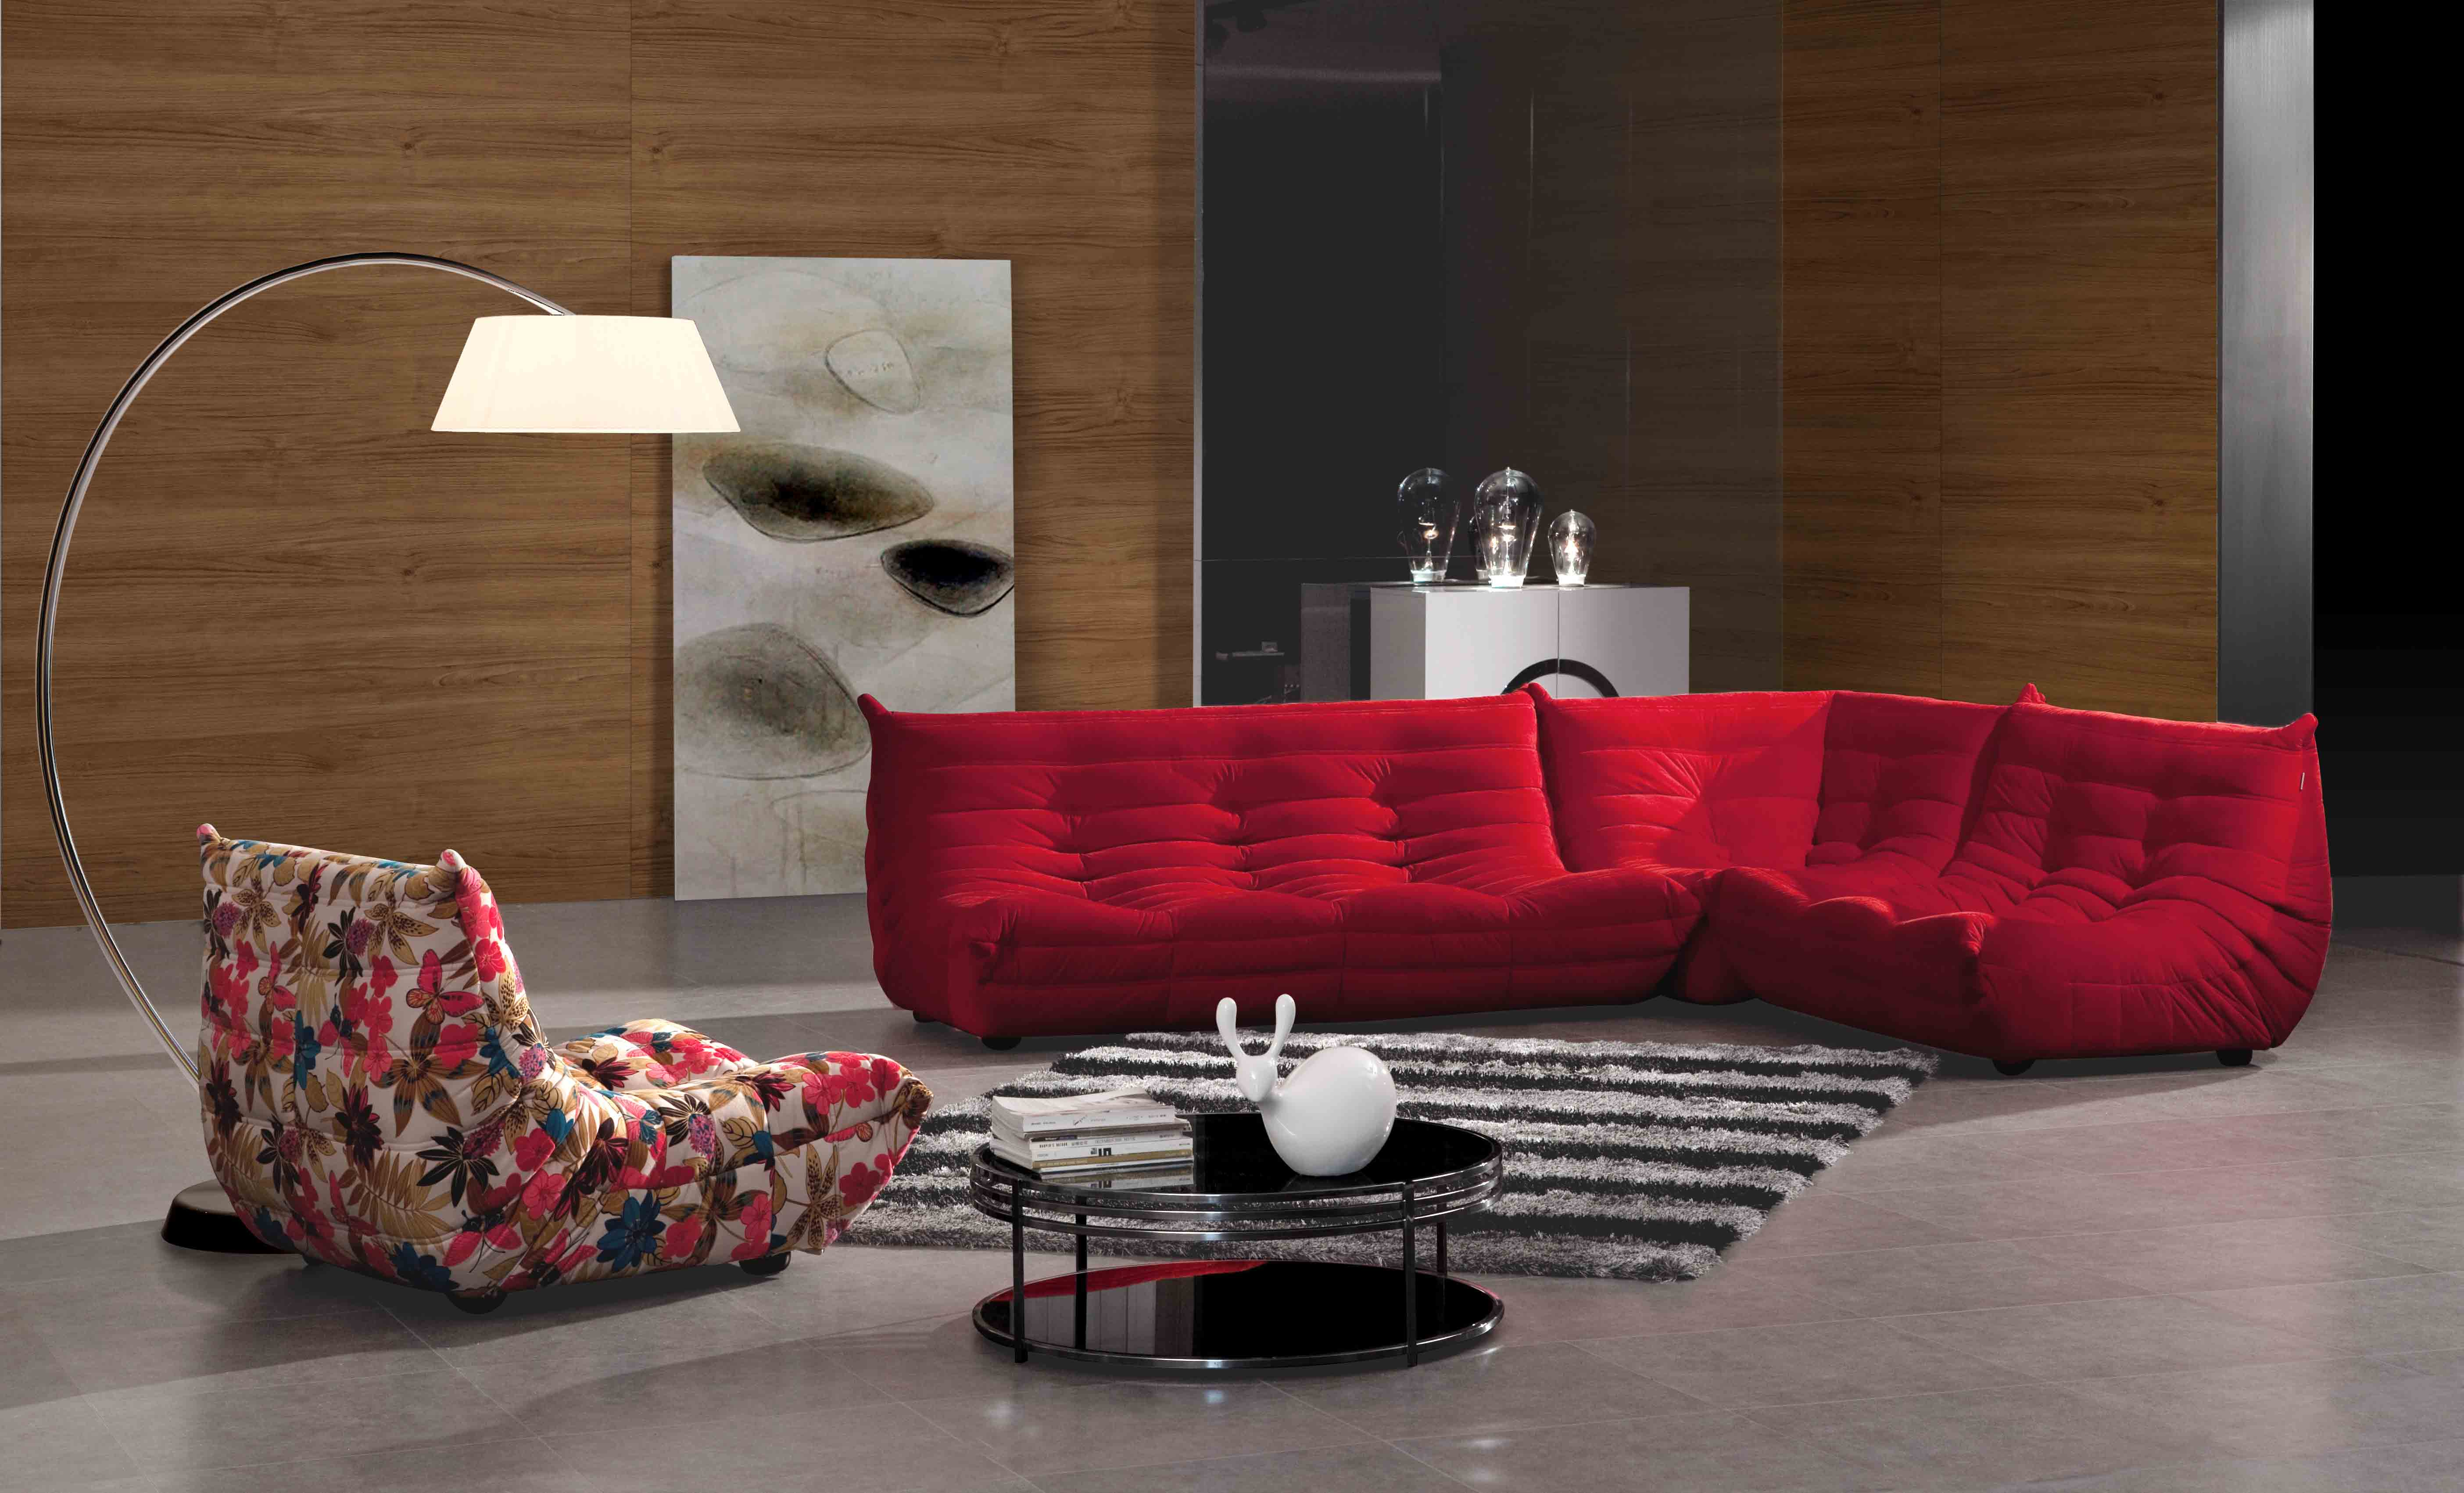 Red Buffalo 3 Seater Fabric Sofa at IDUS Furniture Store